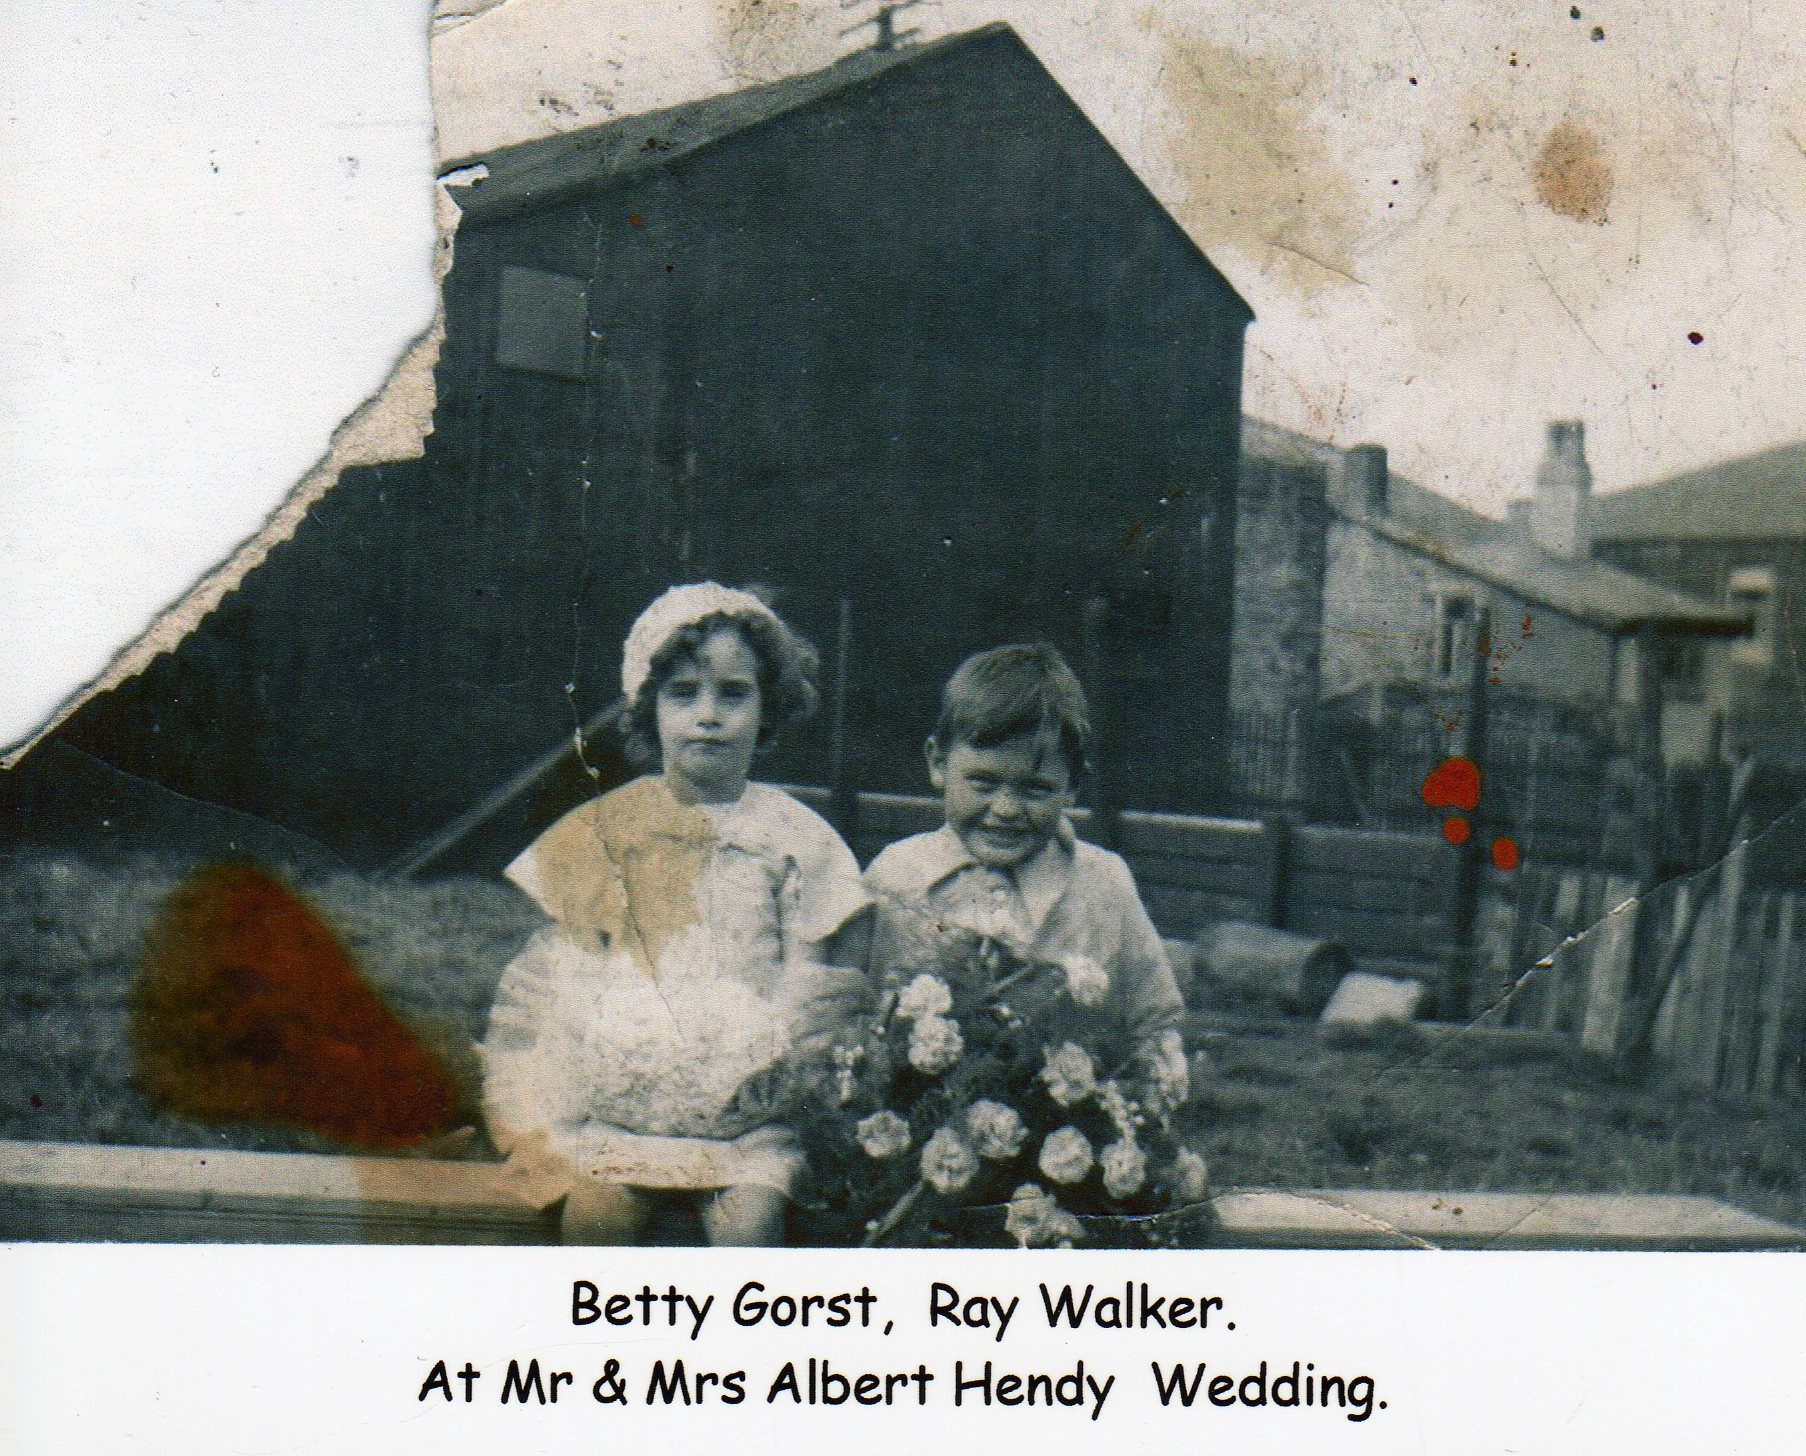 Betty Gorst & Ray Walker